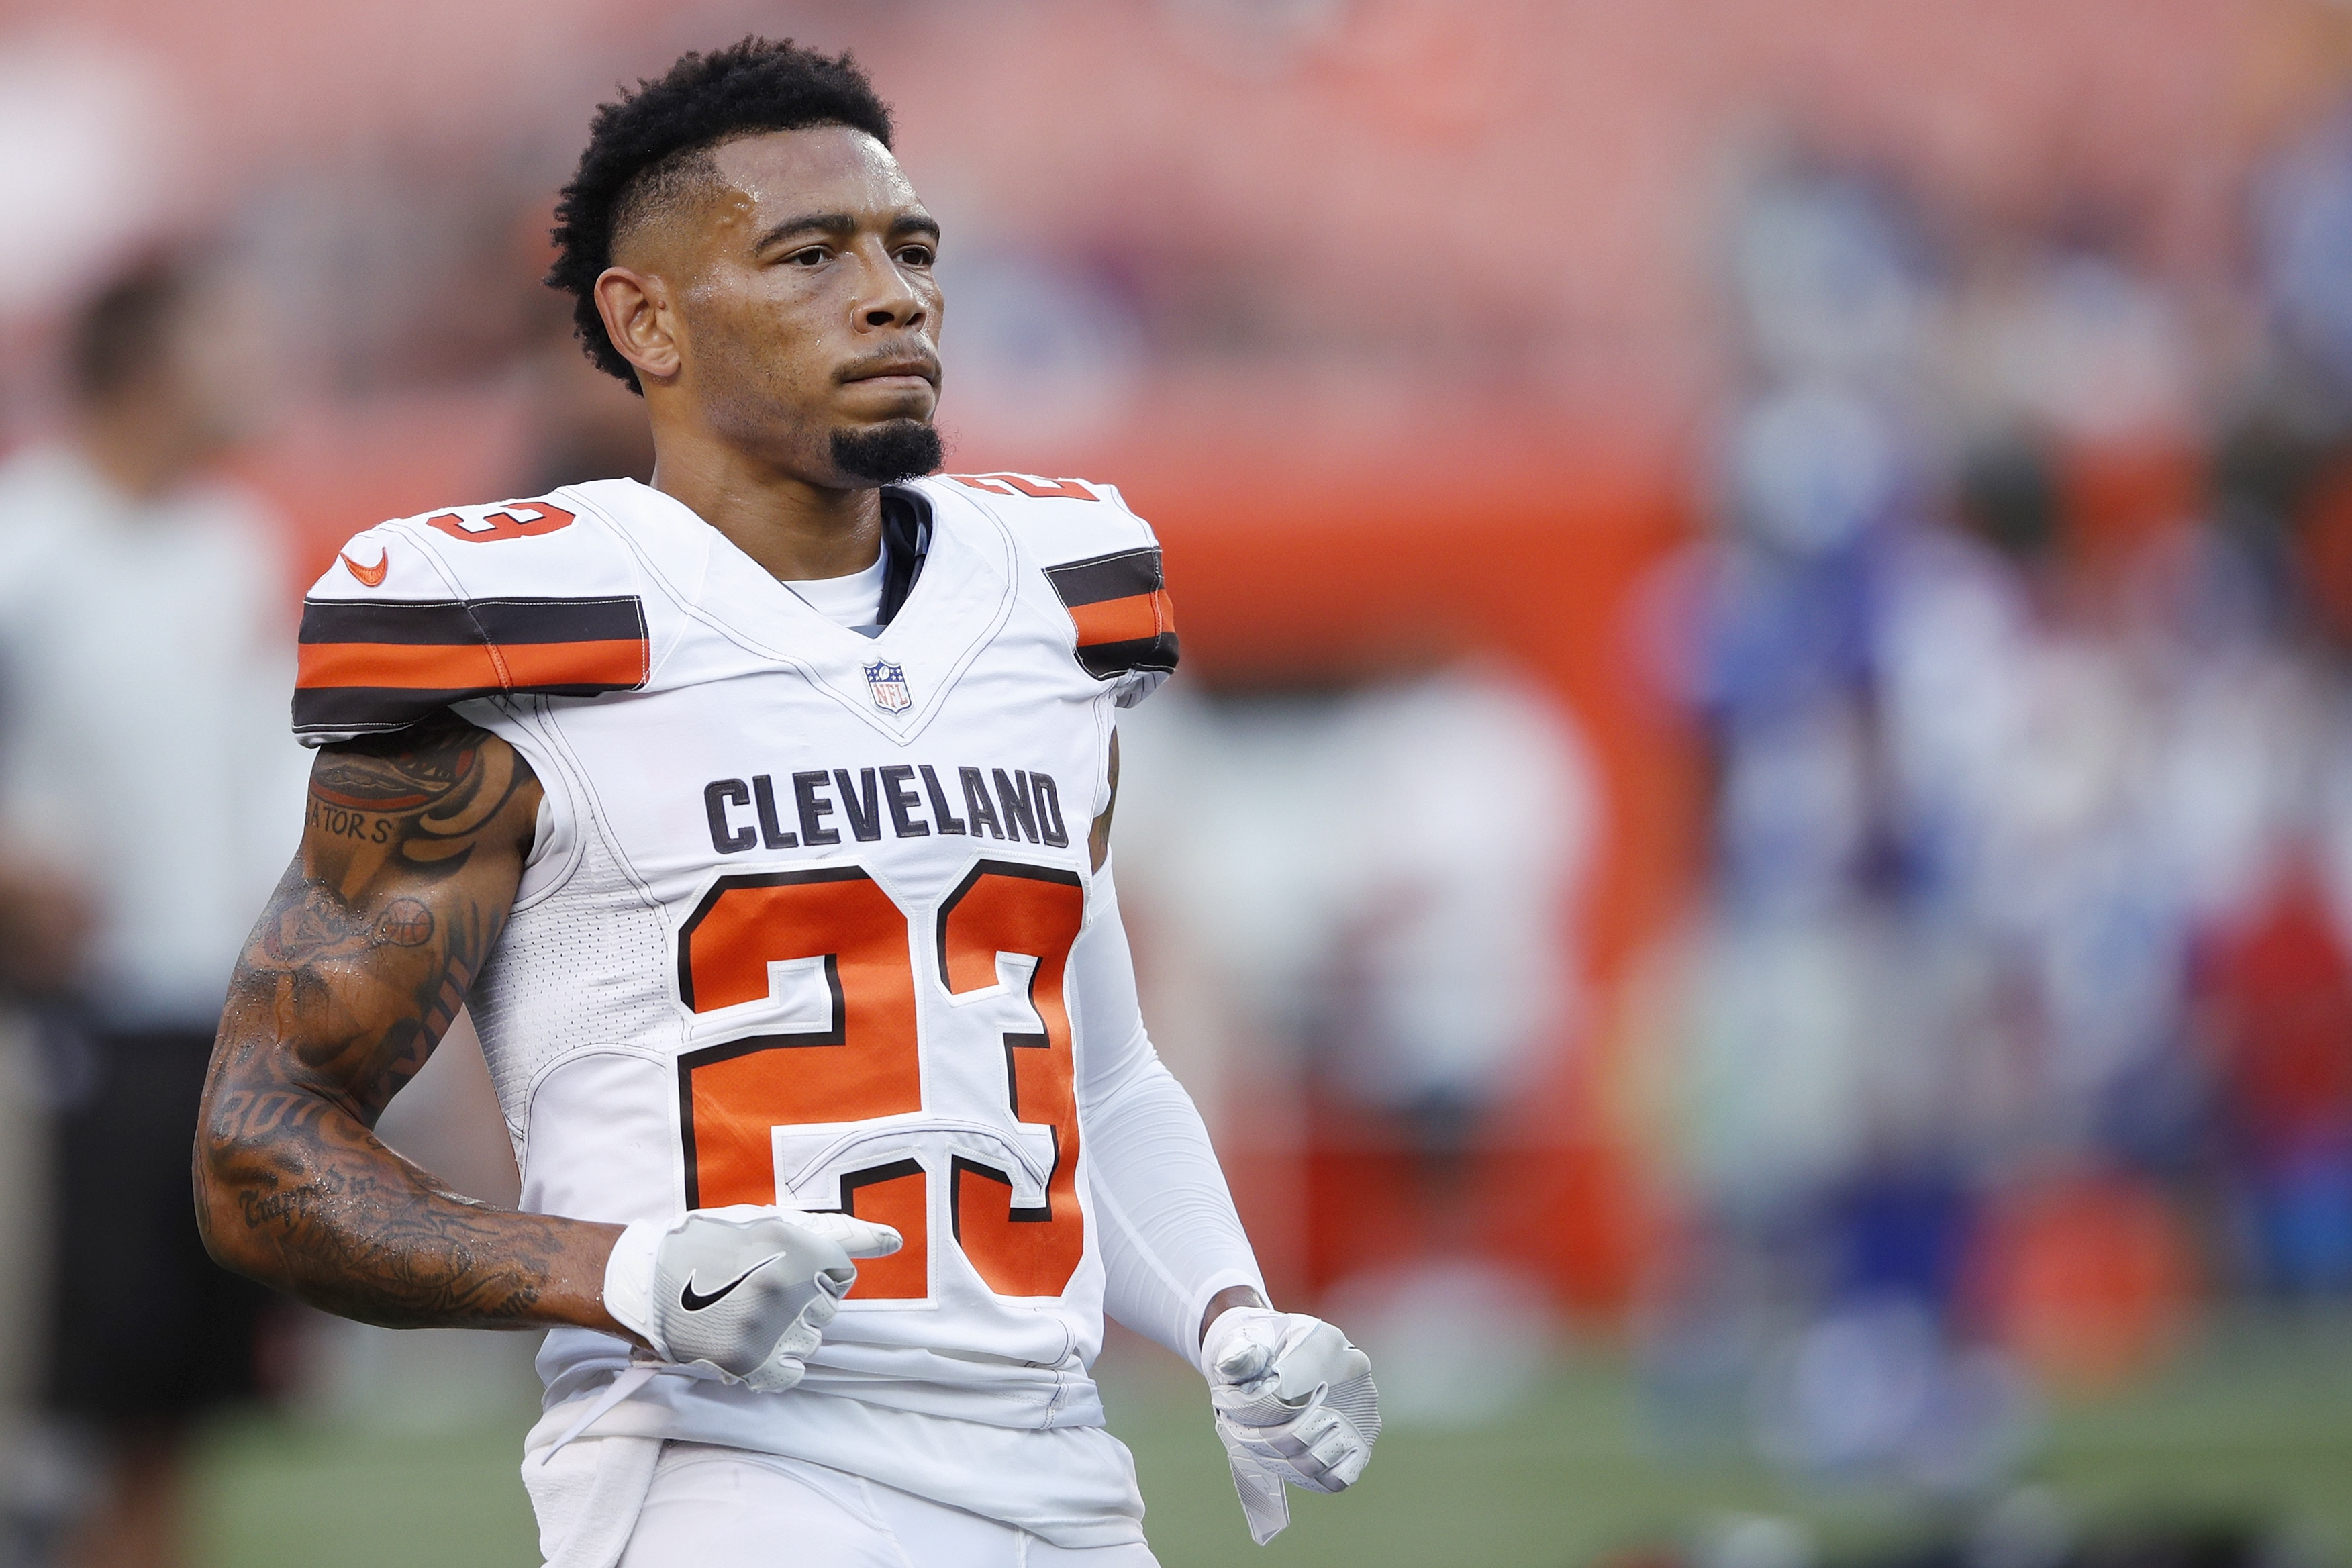 Browns looking to trade CB Haden